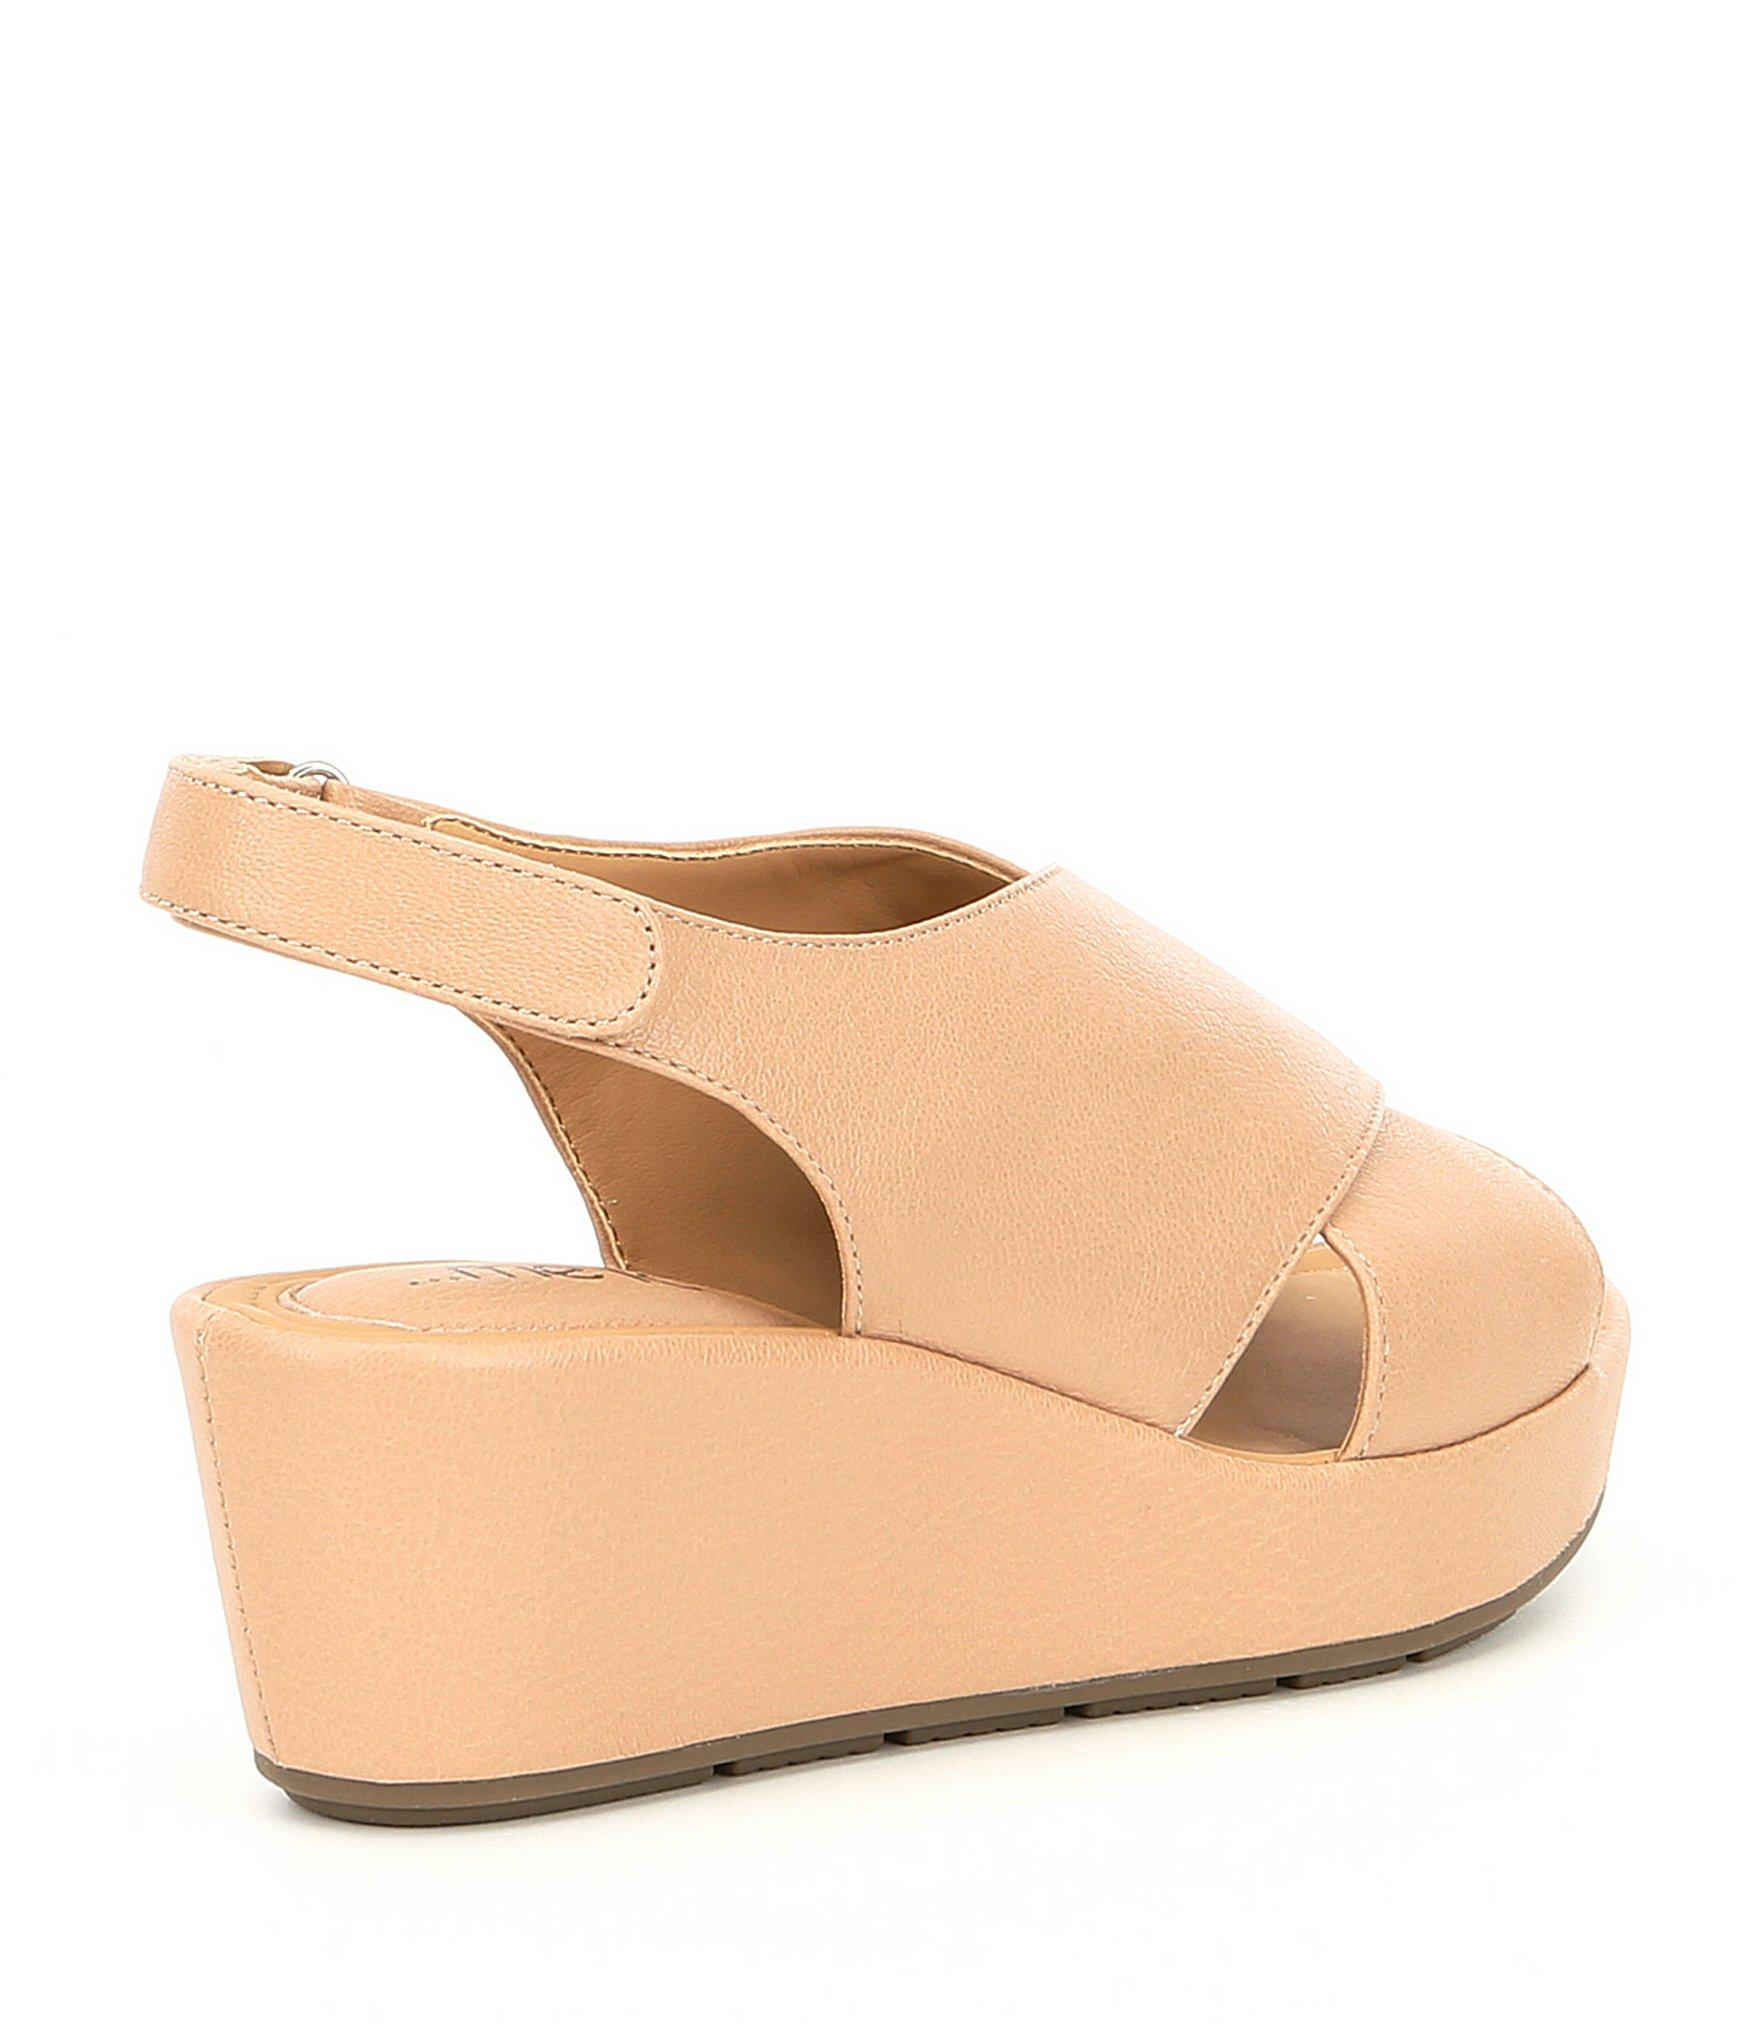 f3b1240ffe Me Too - Multicolor Arena Leather Wedge Sandals - Lyst. View fullscreen